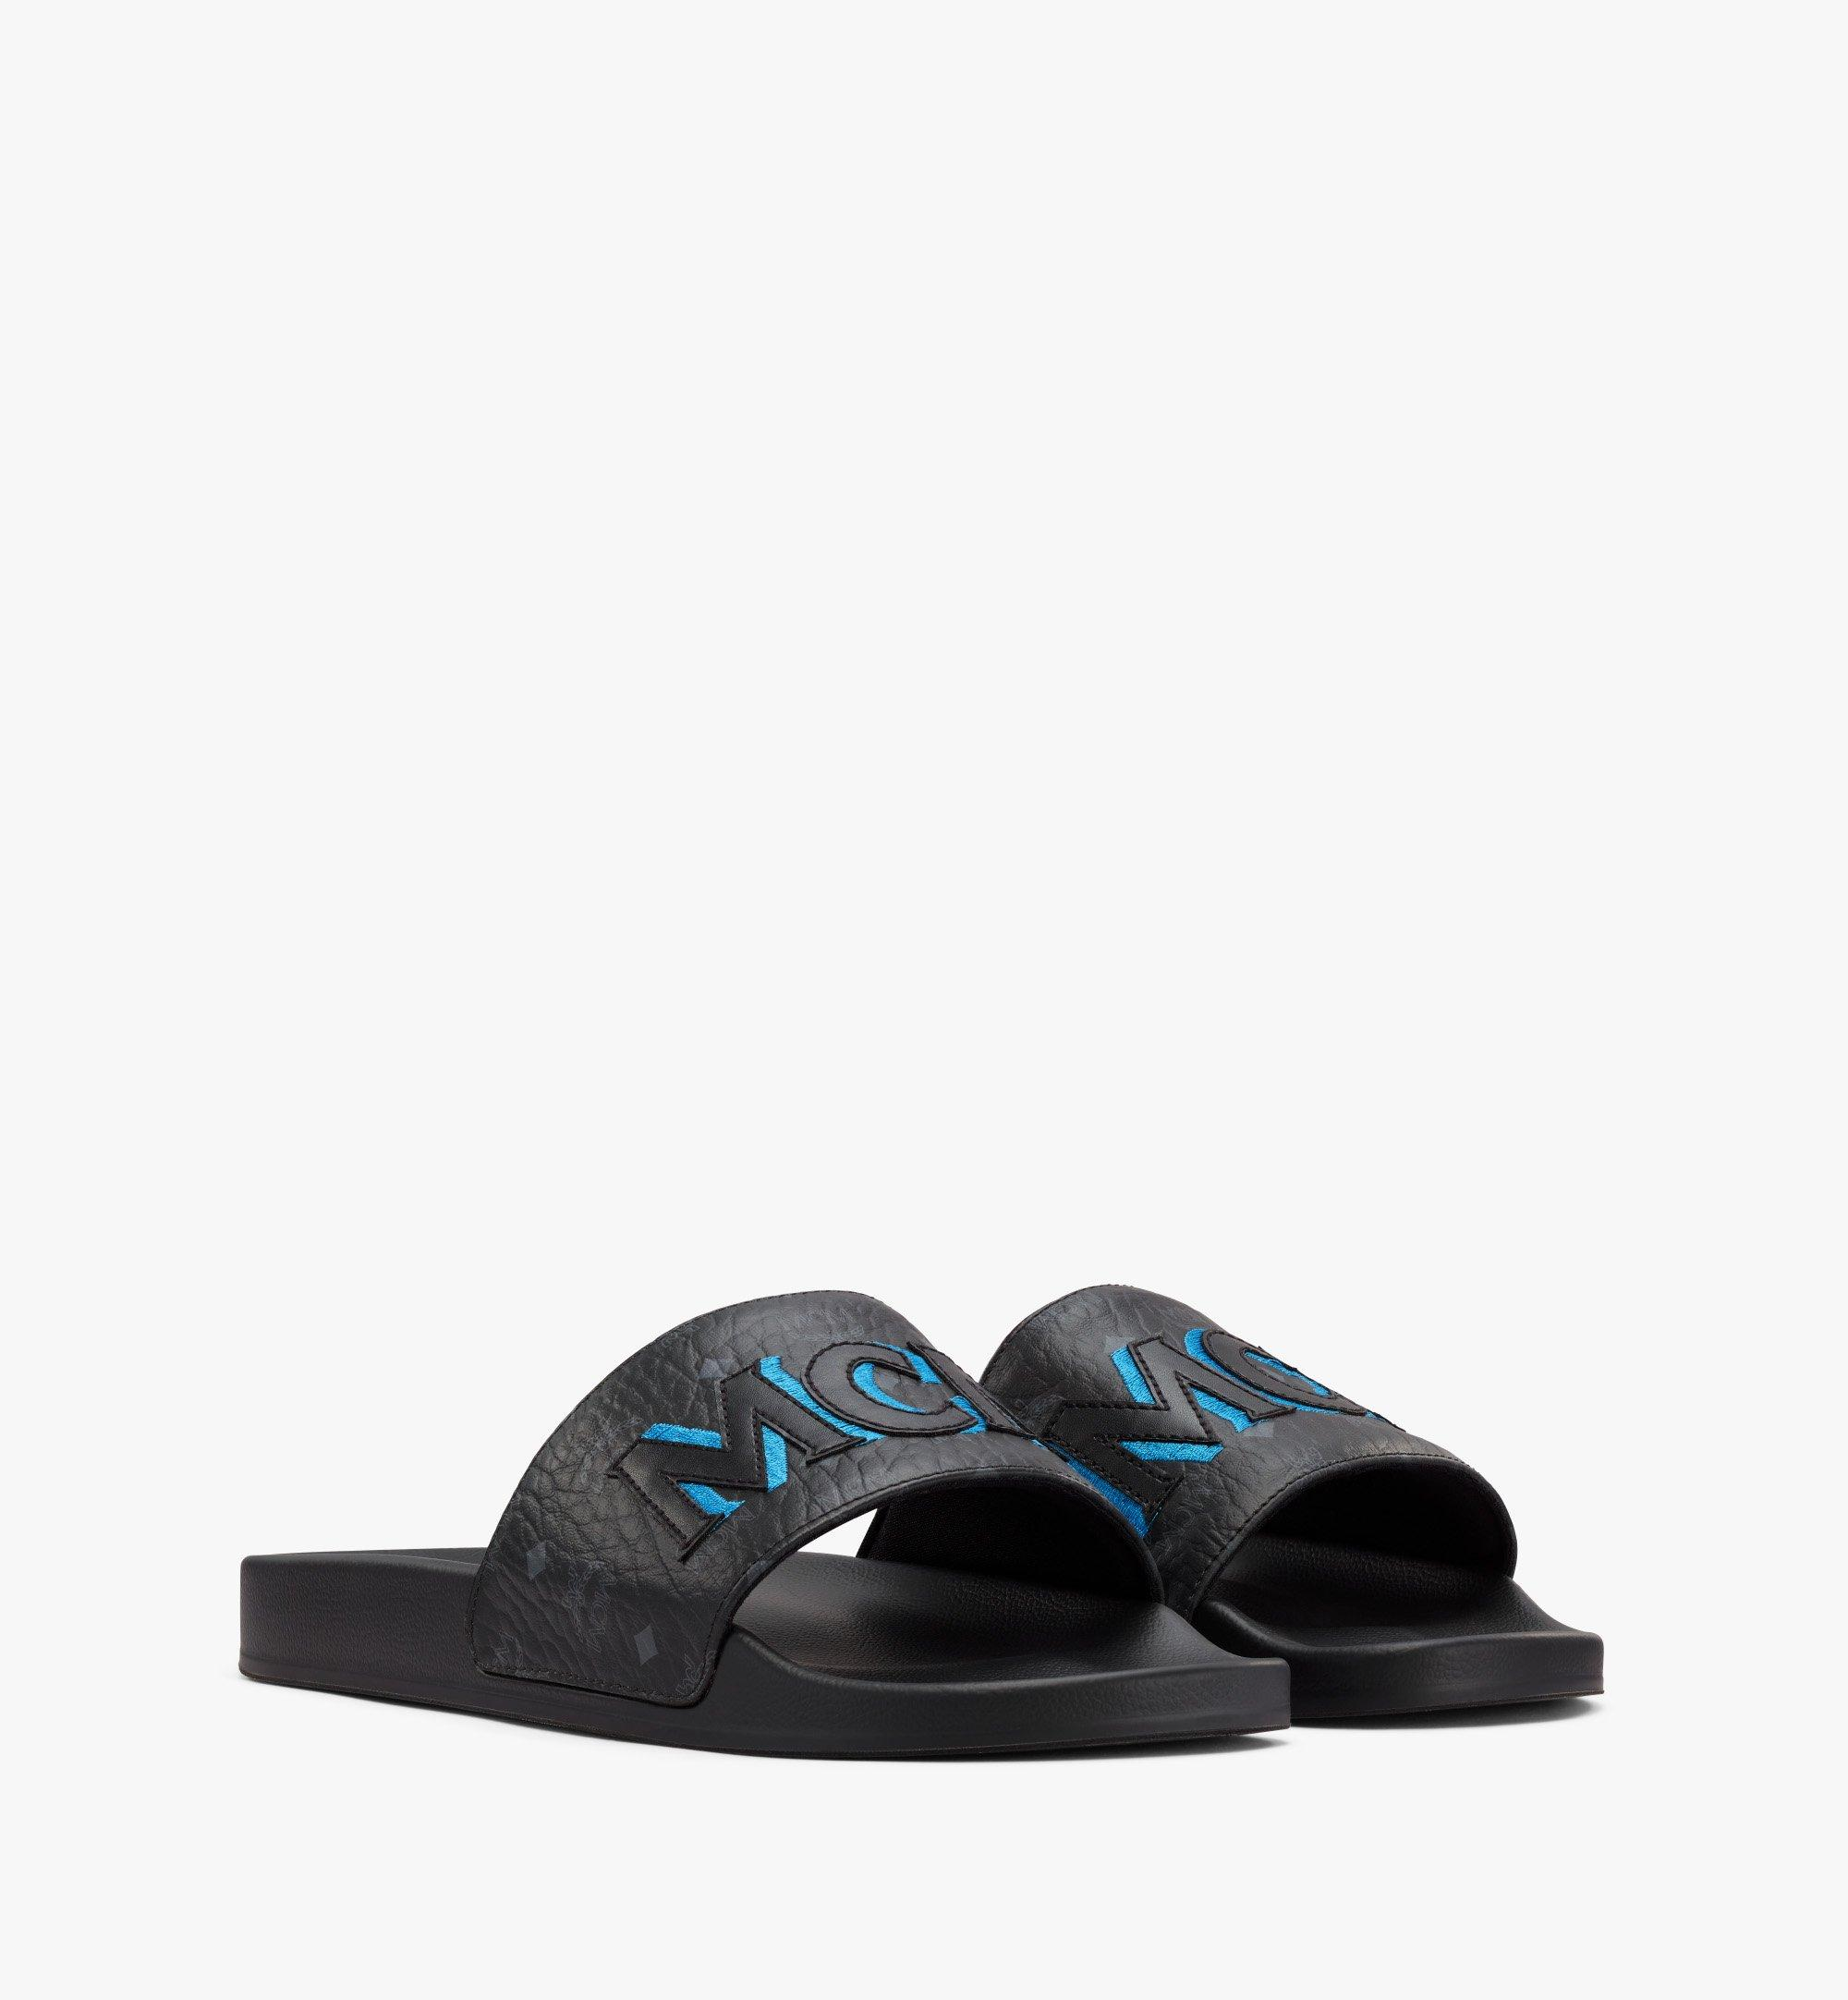 MCM Men's Visetos Patch Slides Blue MEXAAMM16H7041 Alternate View 1